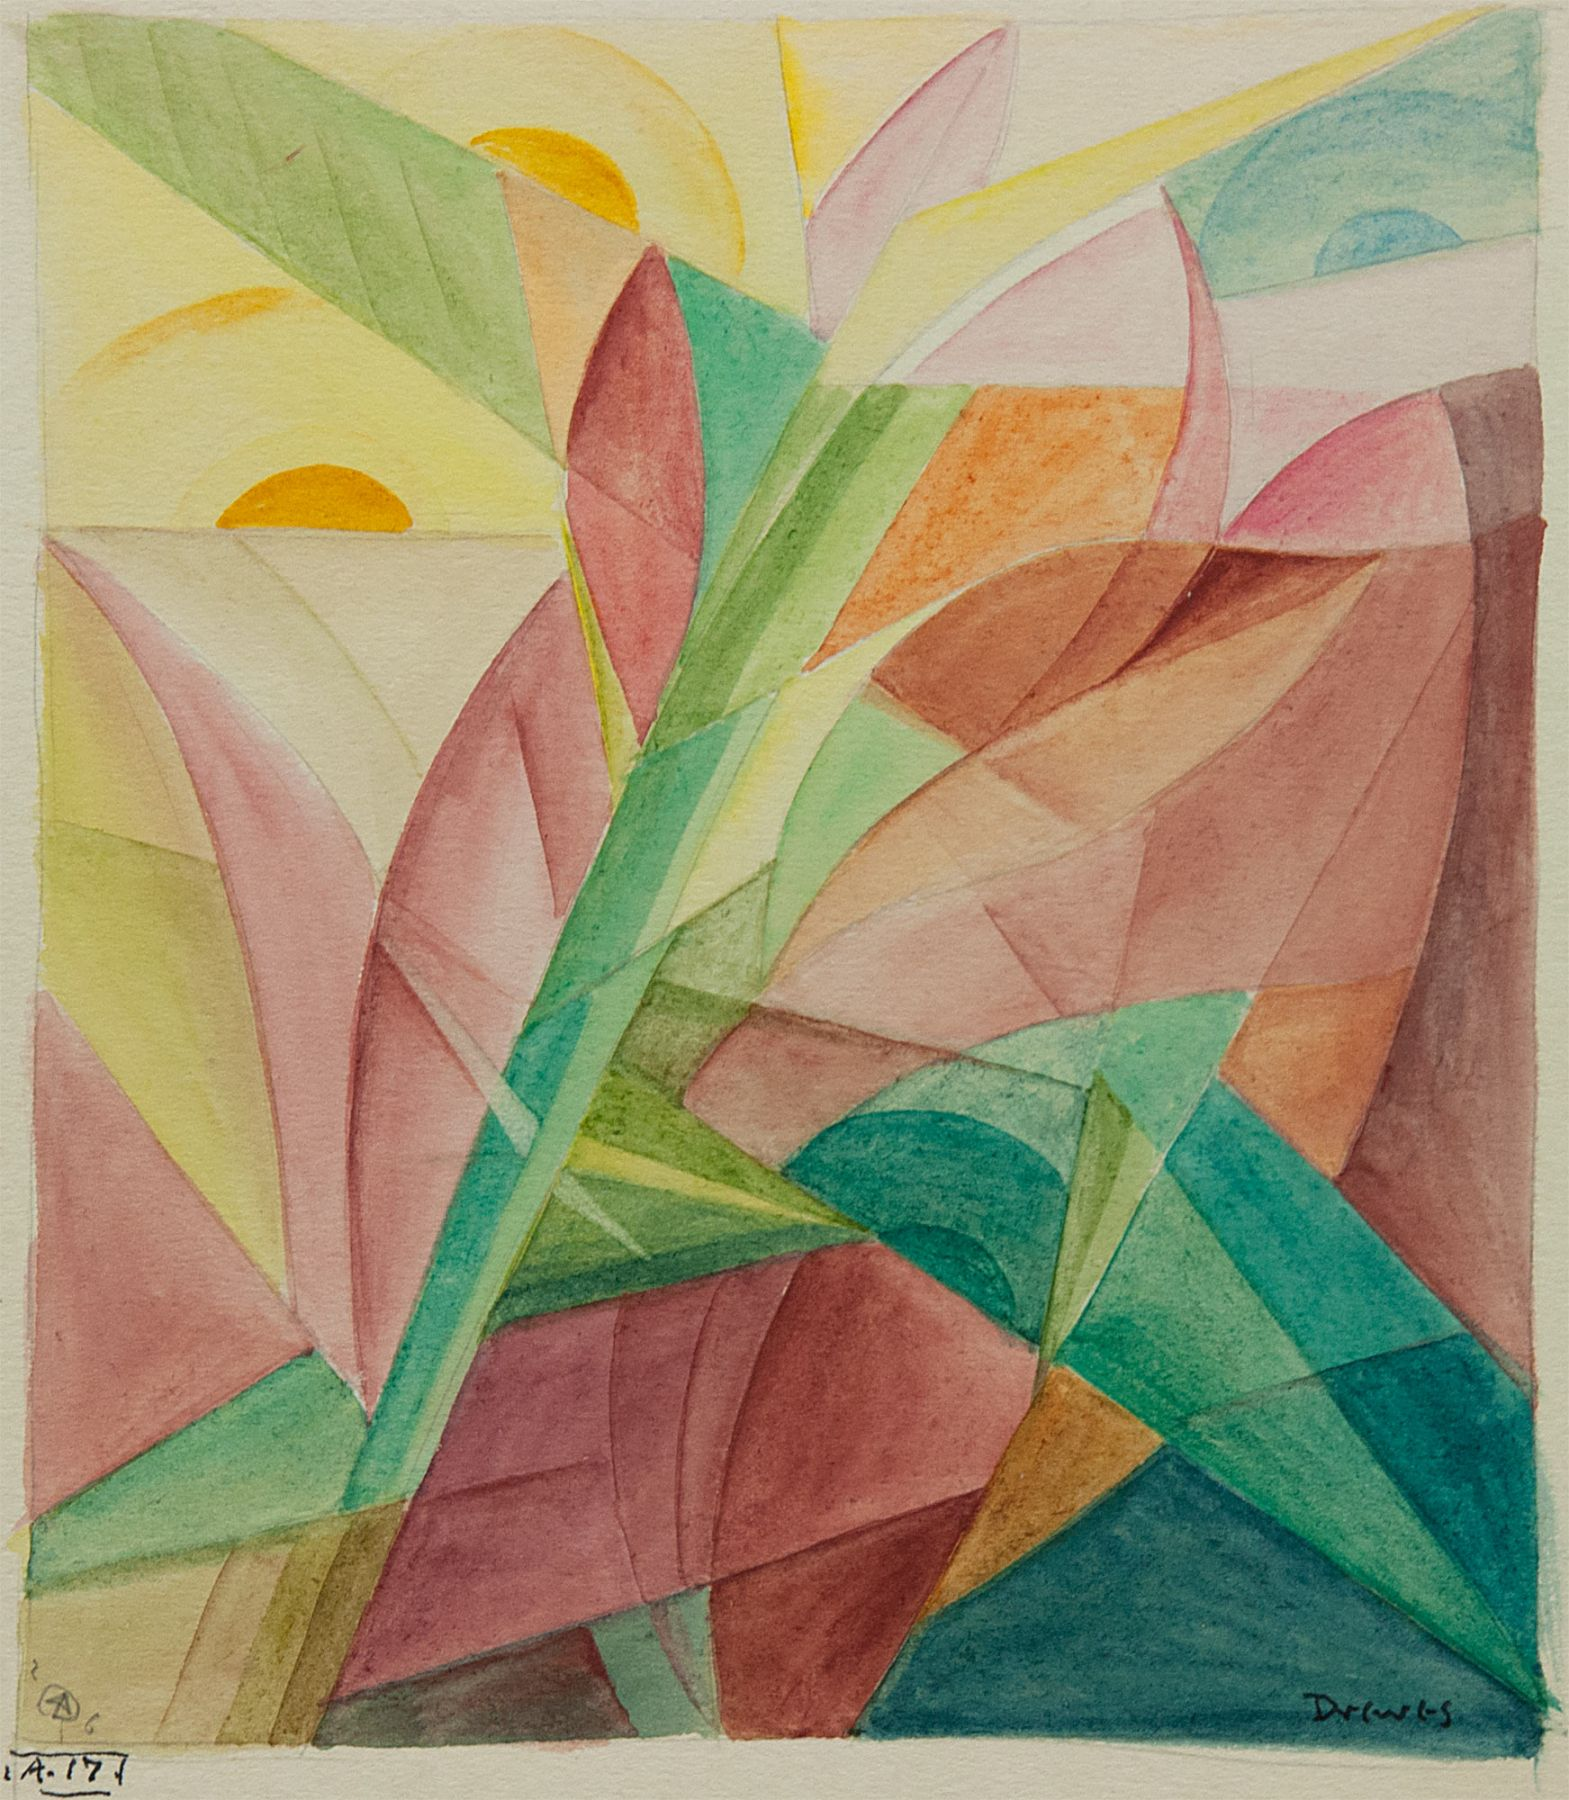 WERNER DREWES (1899-1985), Light and Plant Forms, 1926